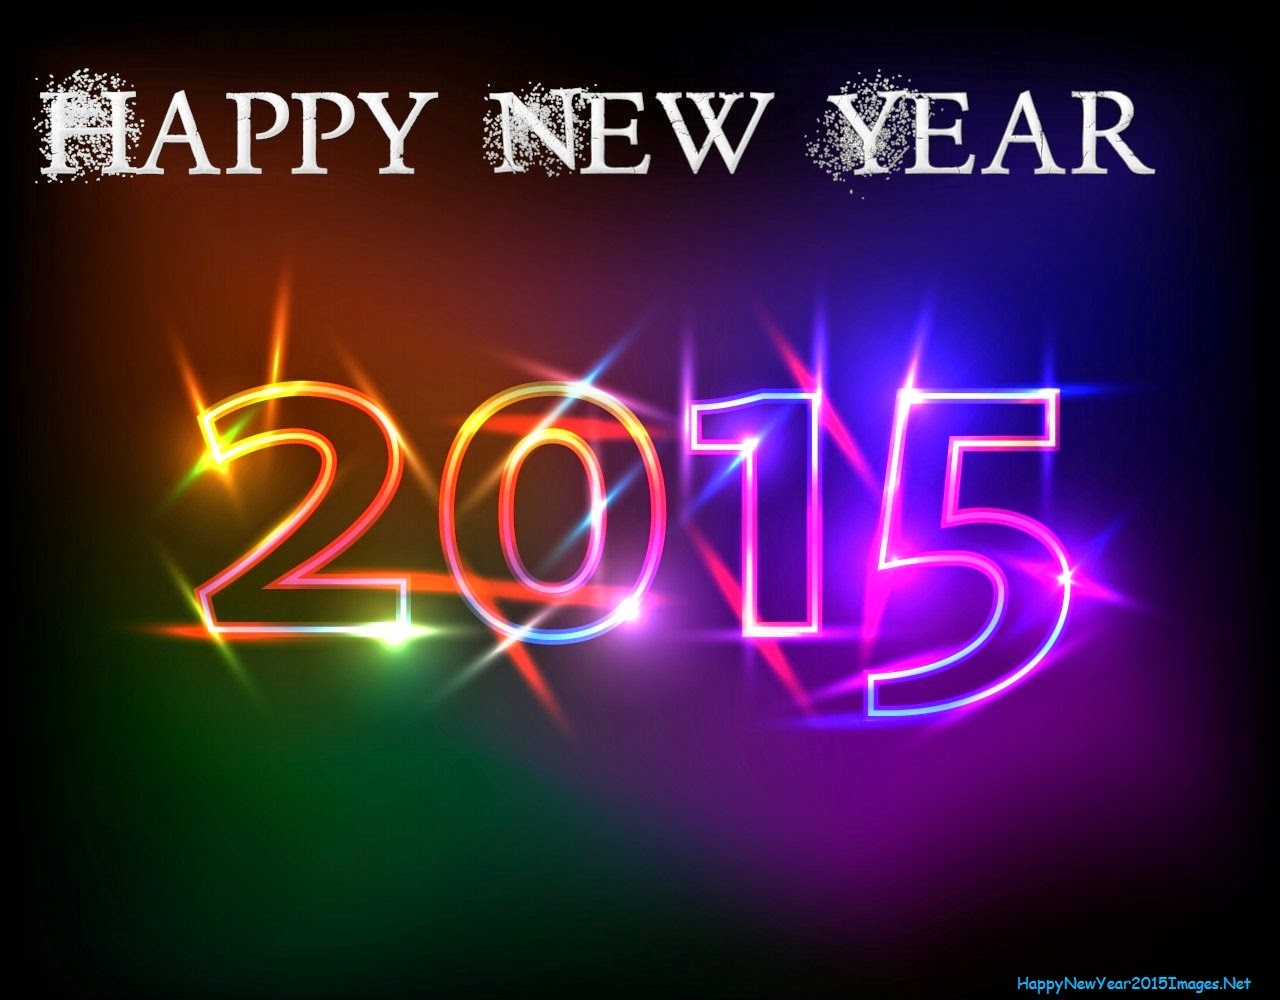 Happy New Year 2015 Wallpaper Black